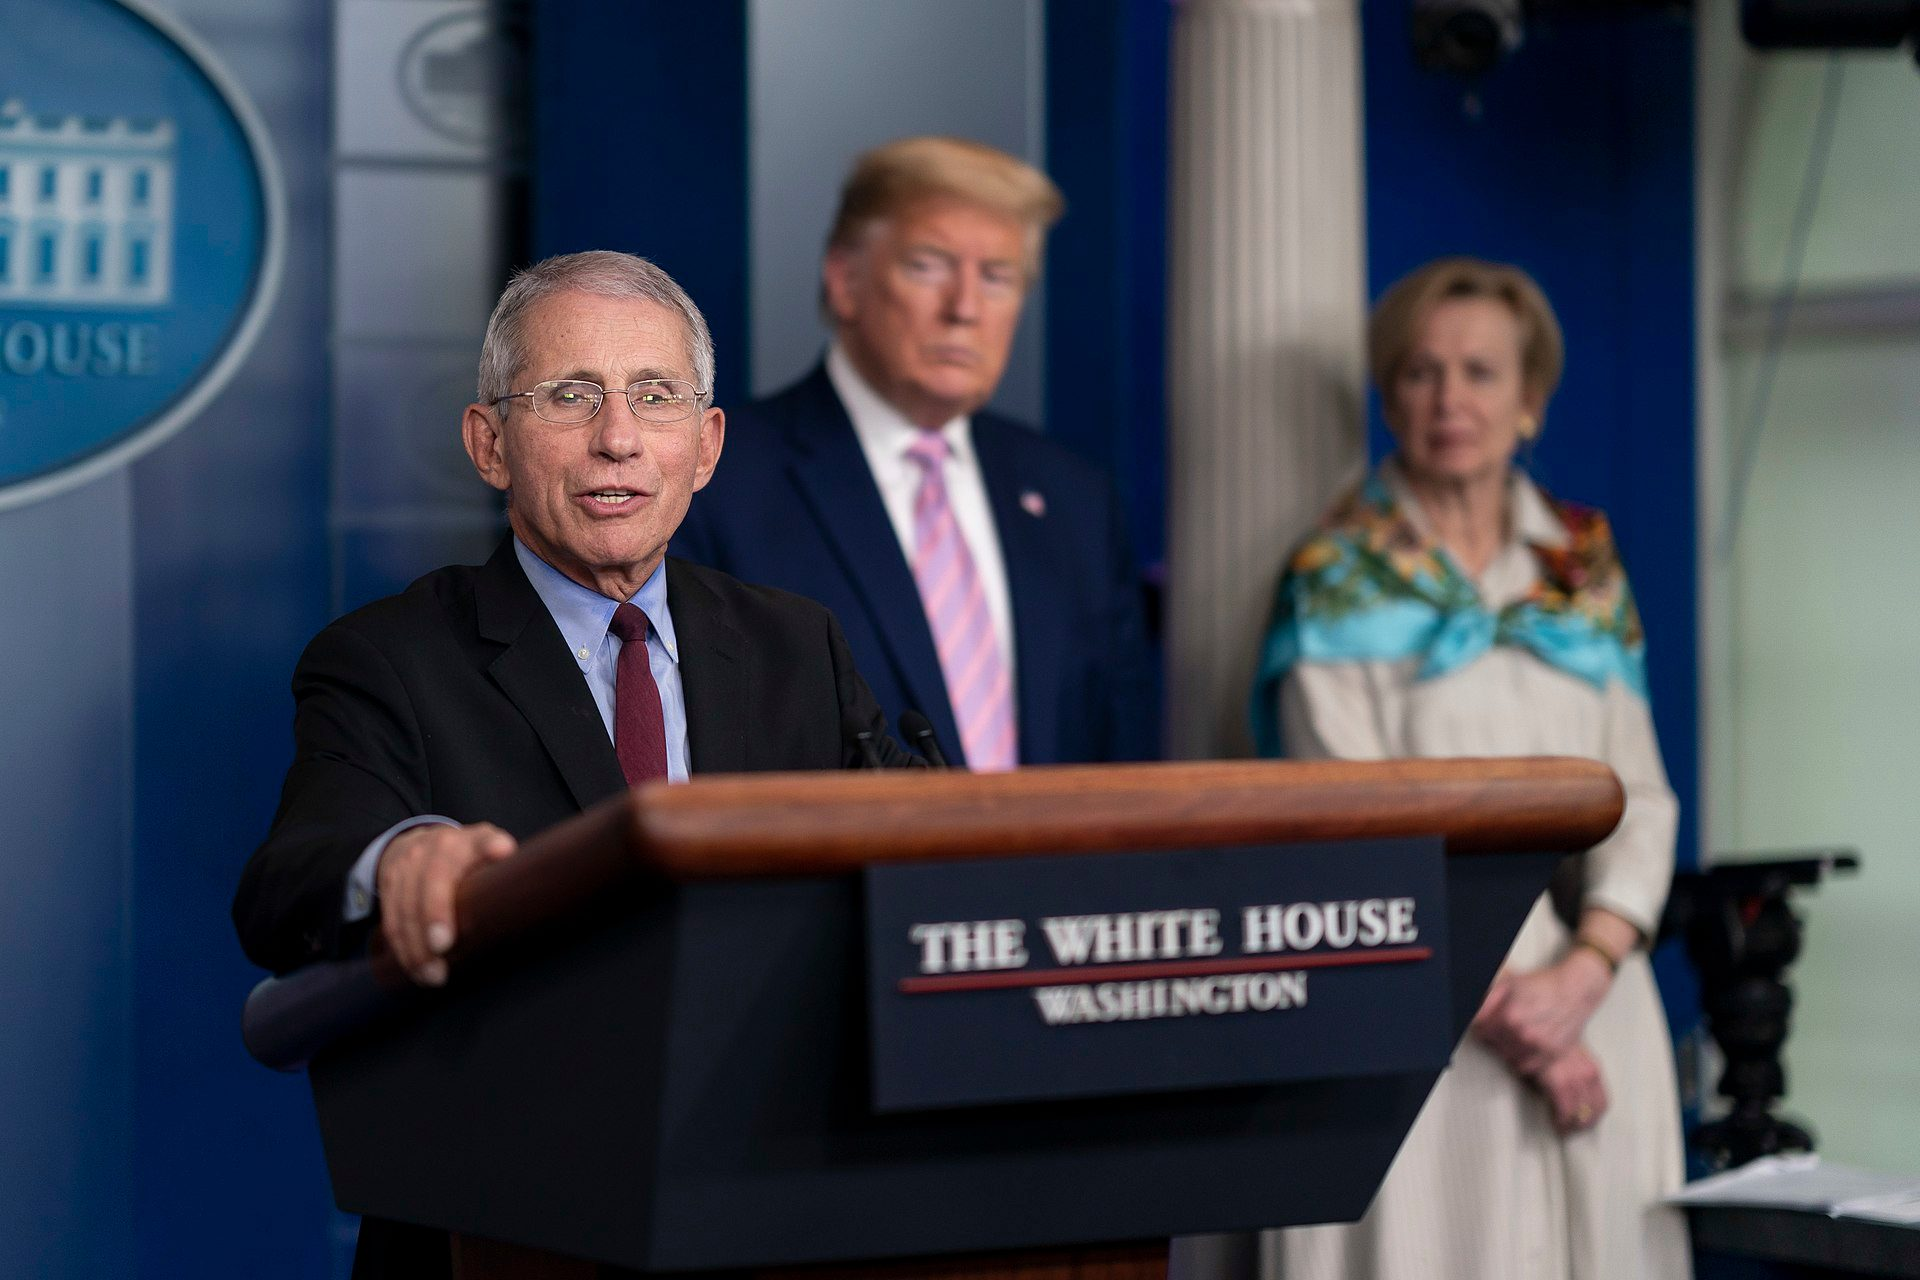 Did Dr. Fauci Criticize Trump's China Travel Restrictions? - snopes